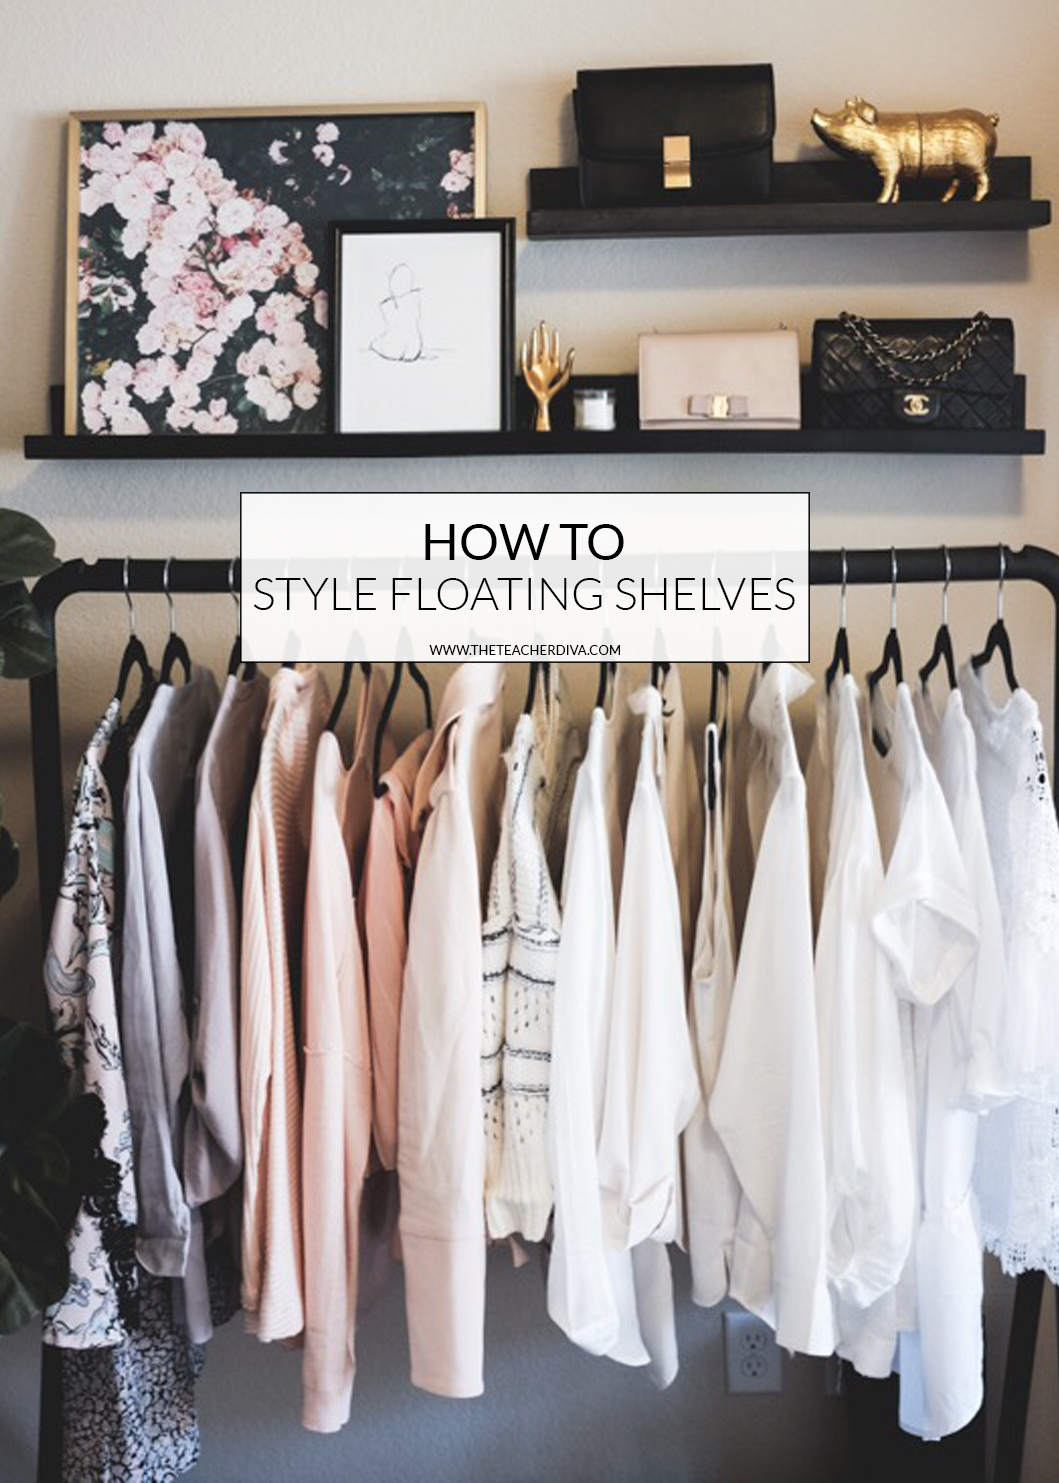 How To Style Floating Shelves | The Teacher Diva: A Dallas Fashion